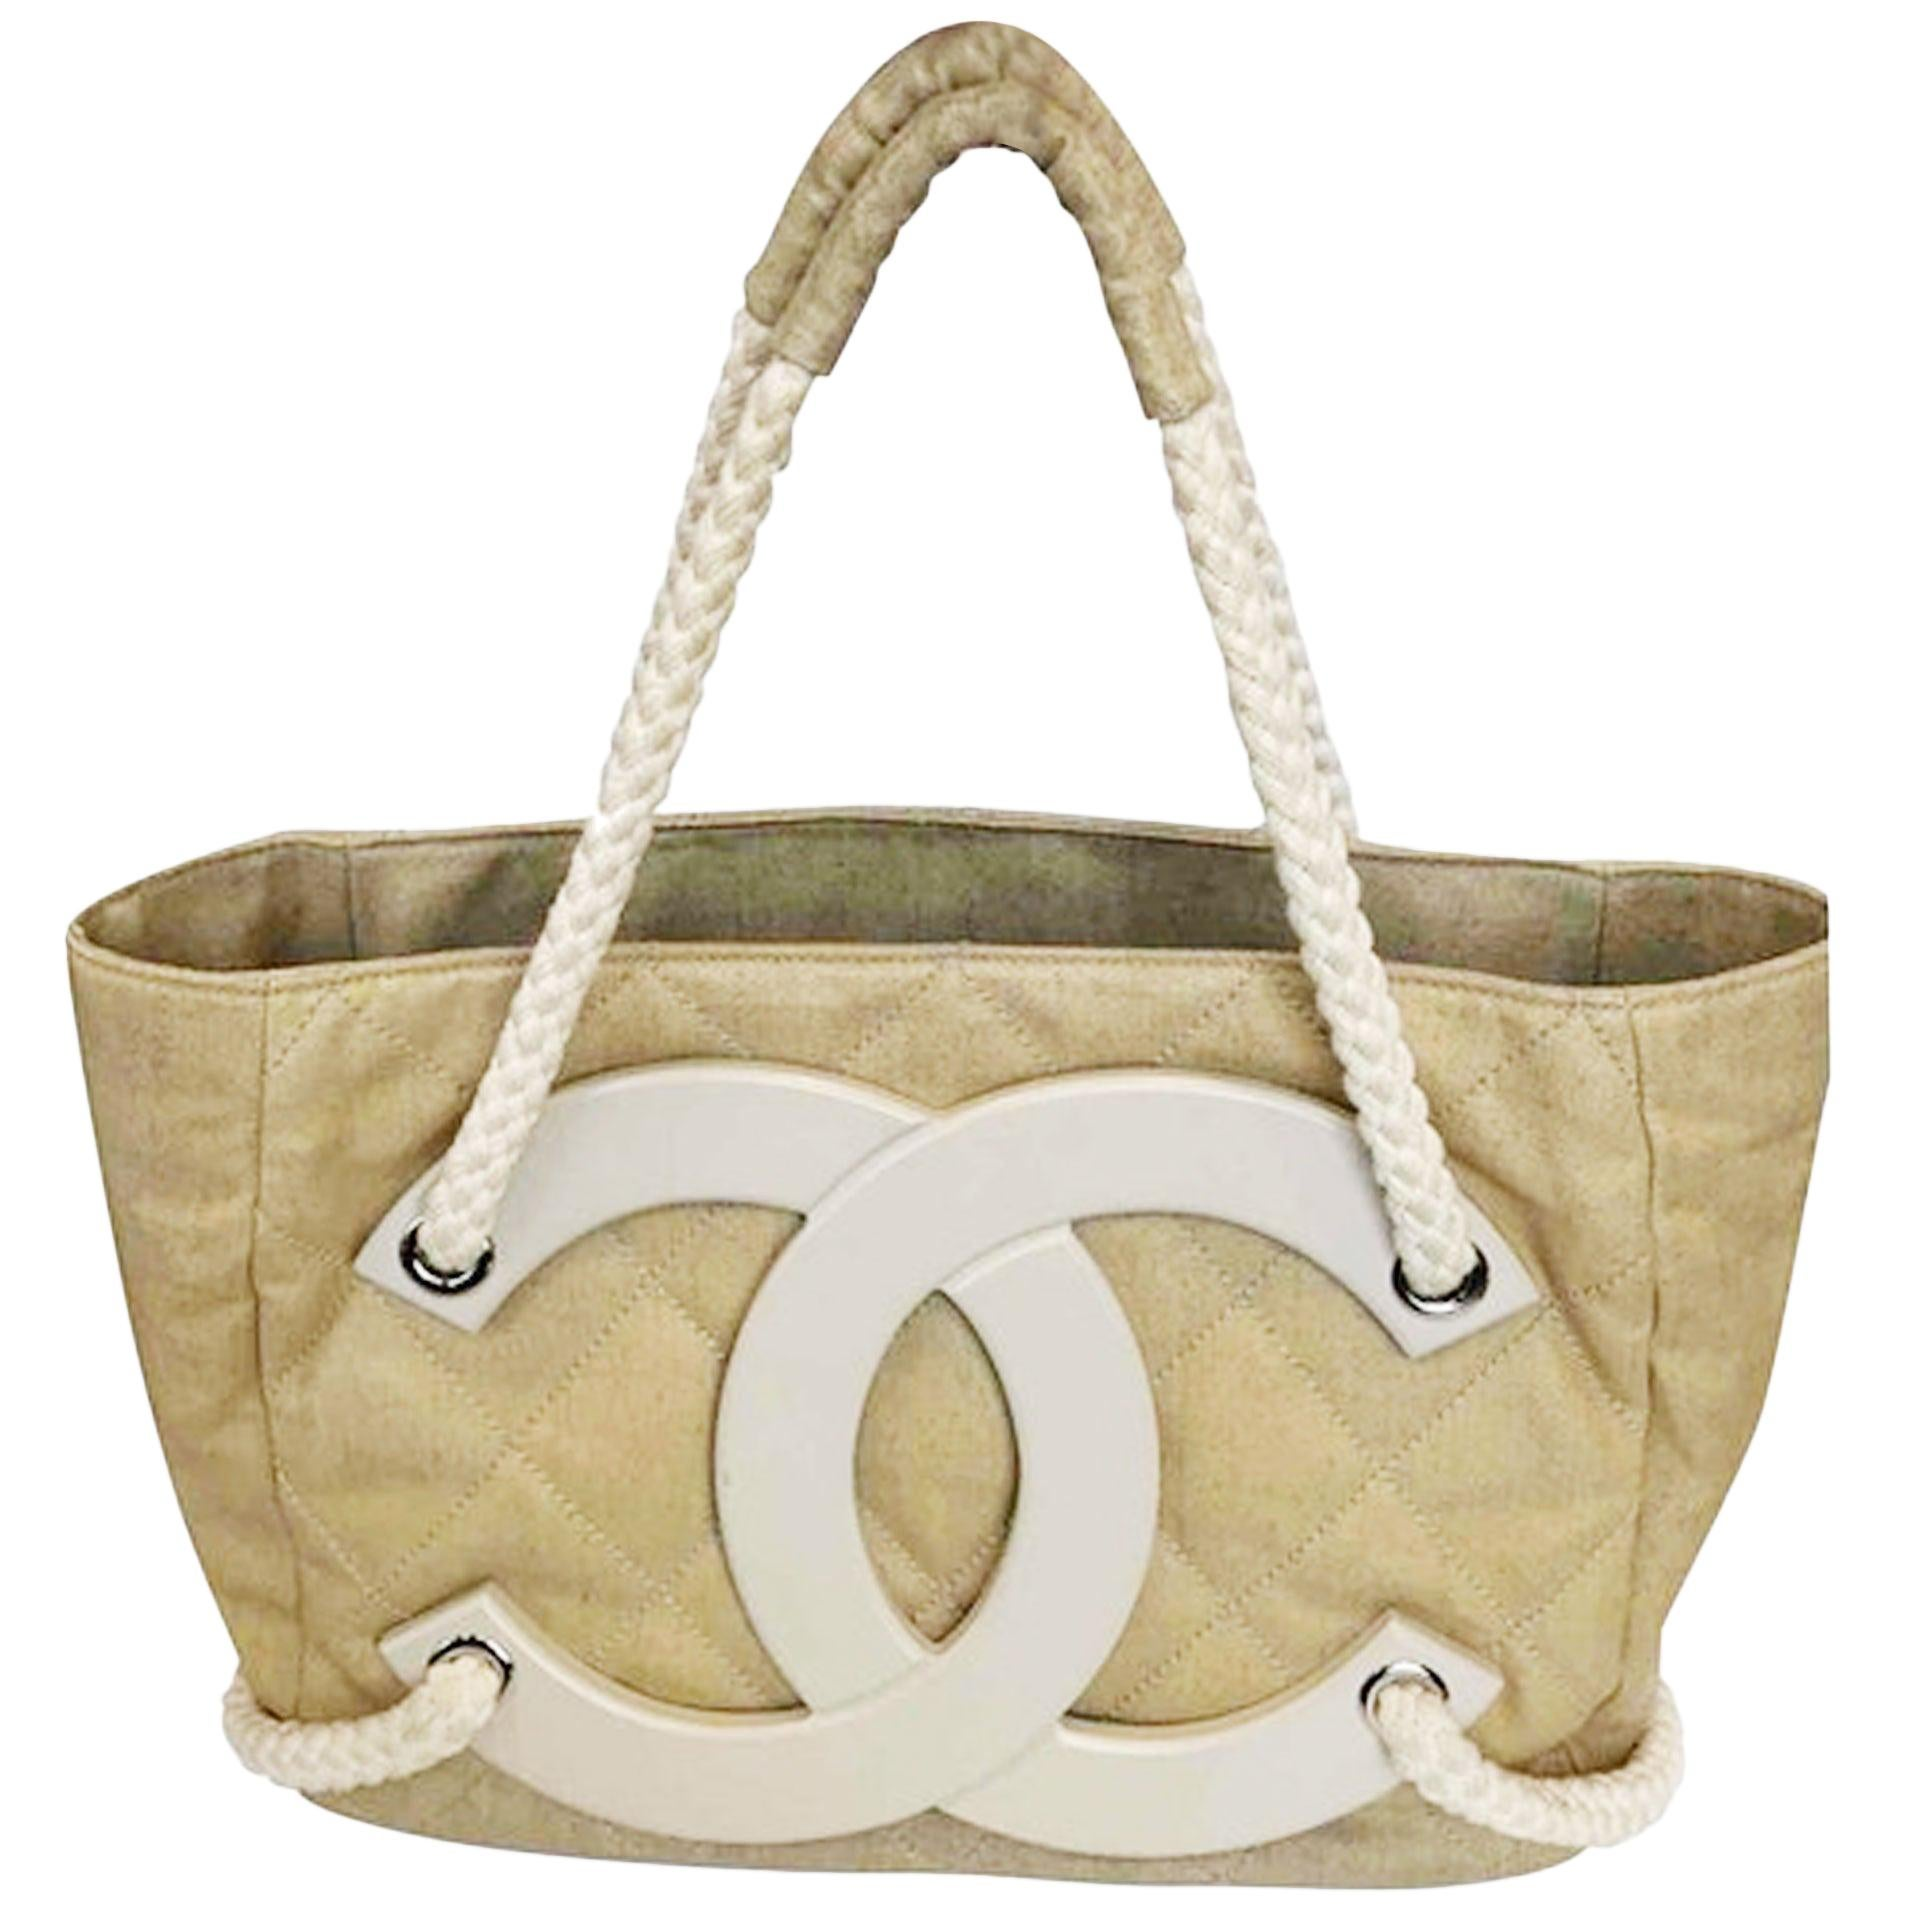 Chanel Deauville Bag Limited Edition Cruise Beige Coated Canvas Tote